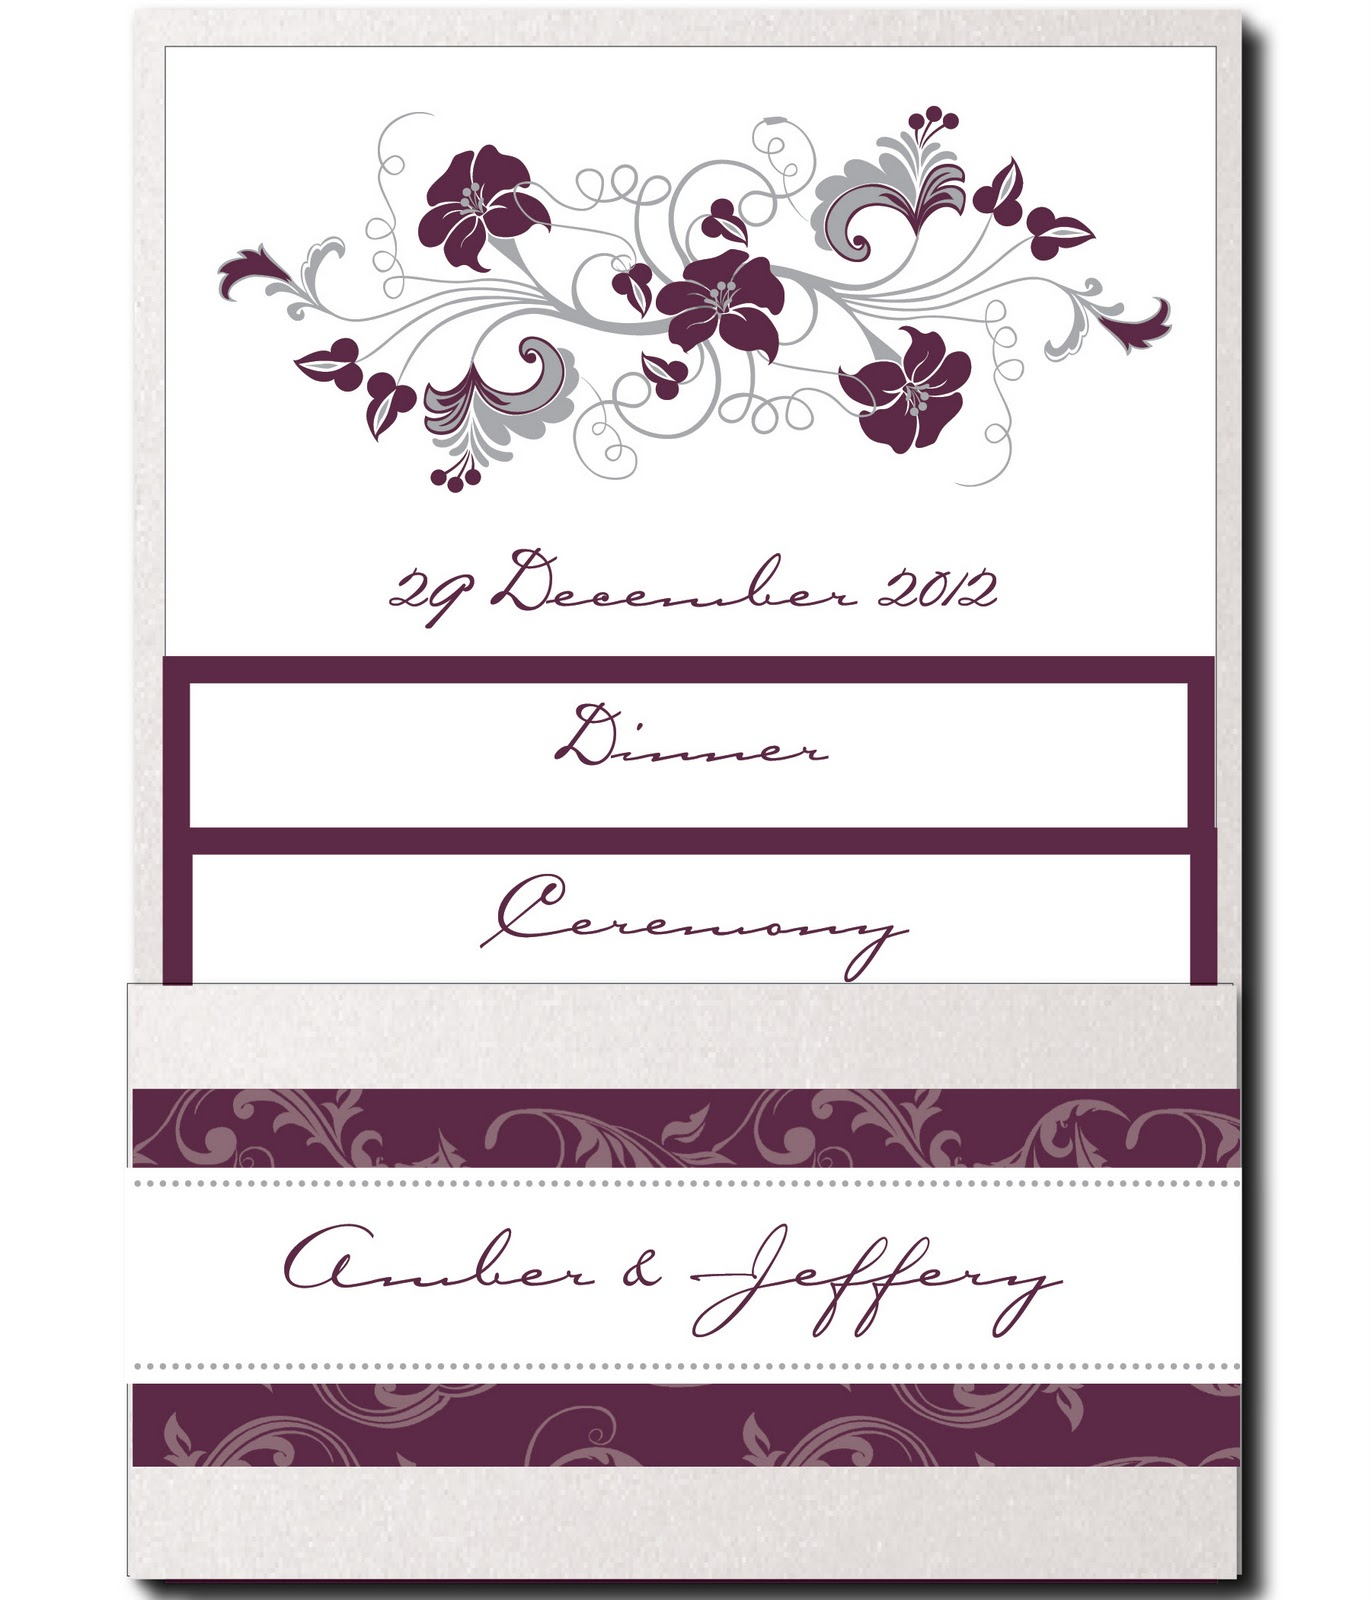 Wedding Invitation Blog: NEW! Pocket Wedding Invitations